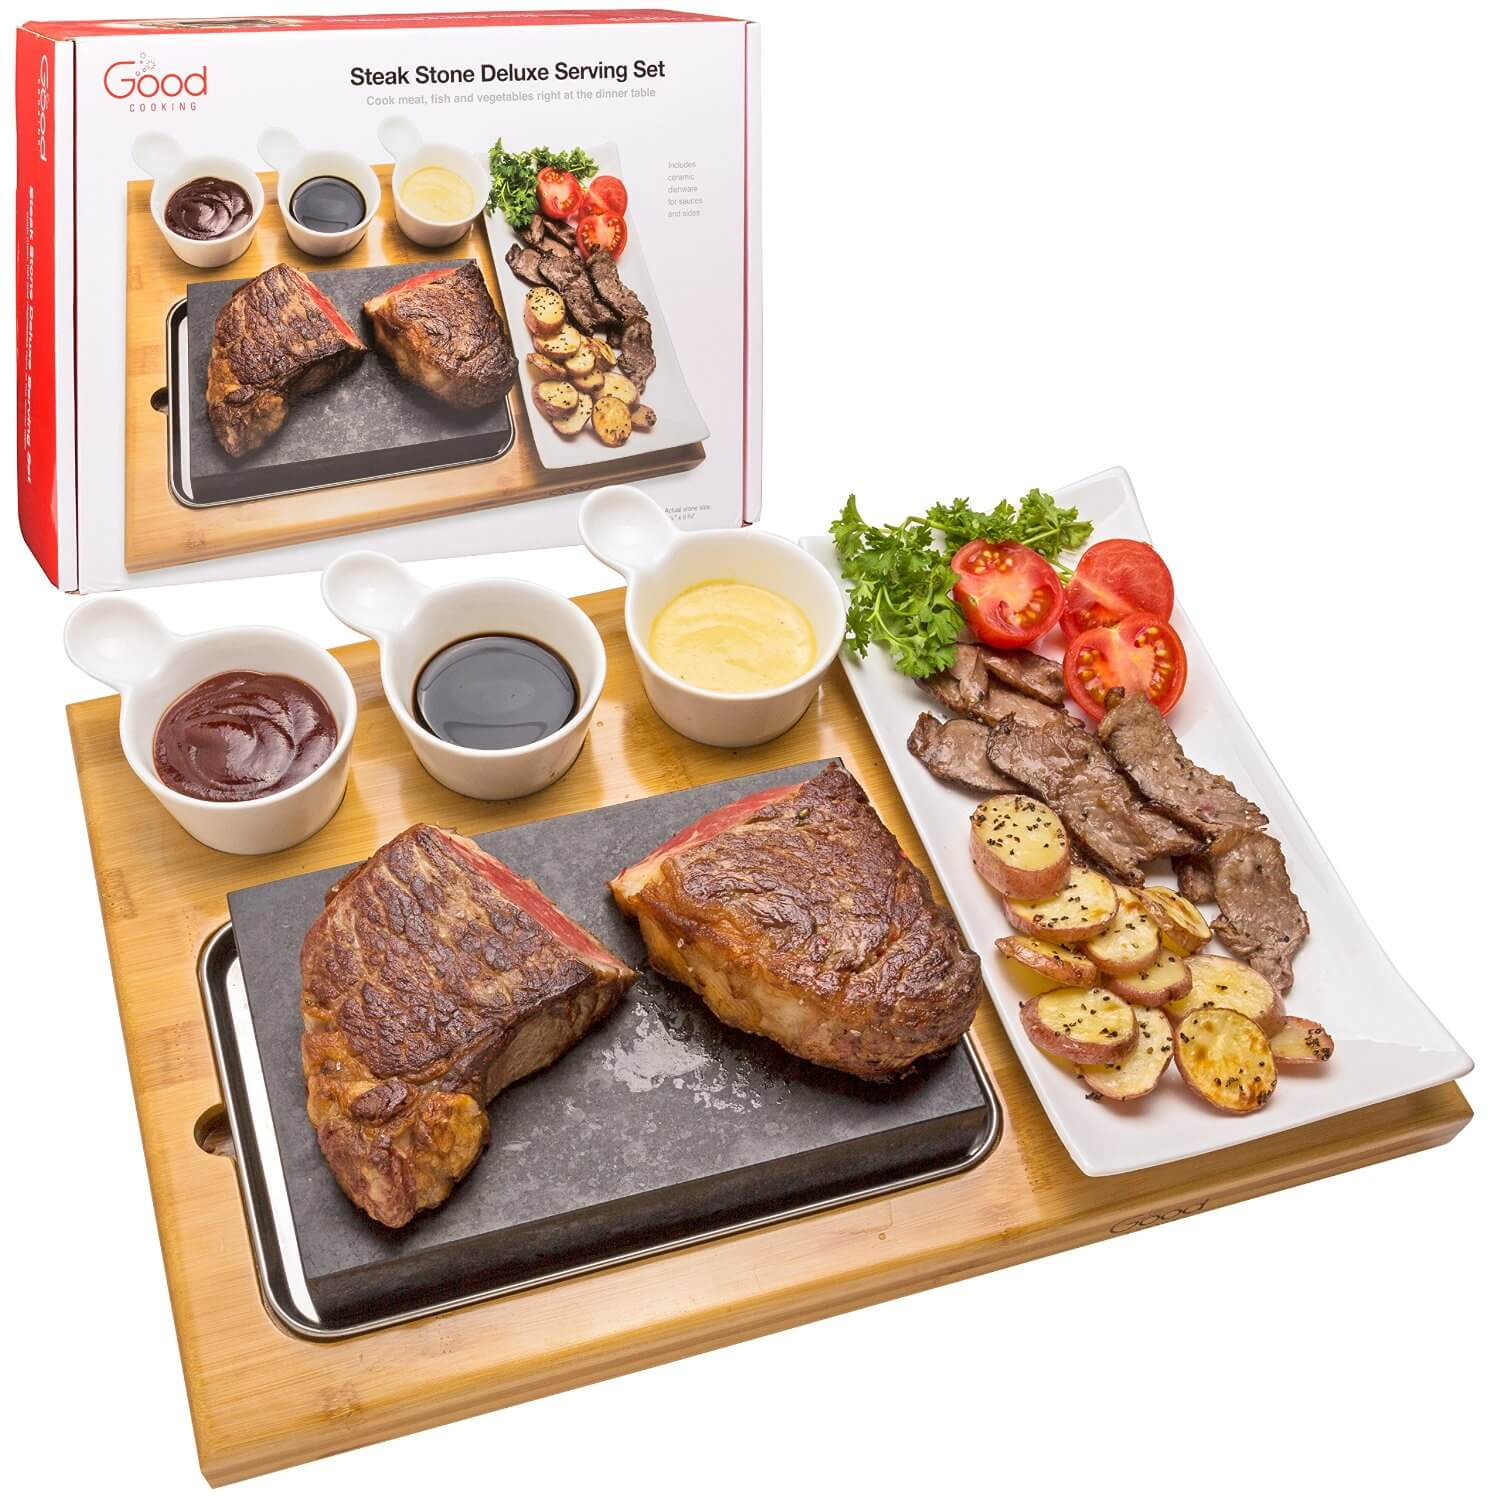 Steak Stone Deluxe Serving Set from Good Cooking